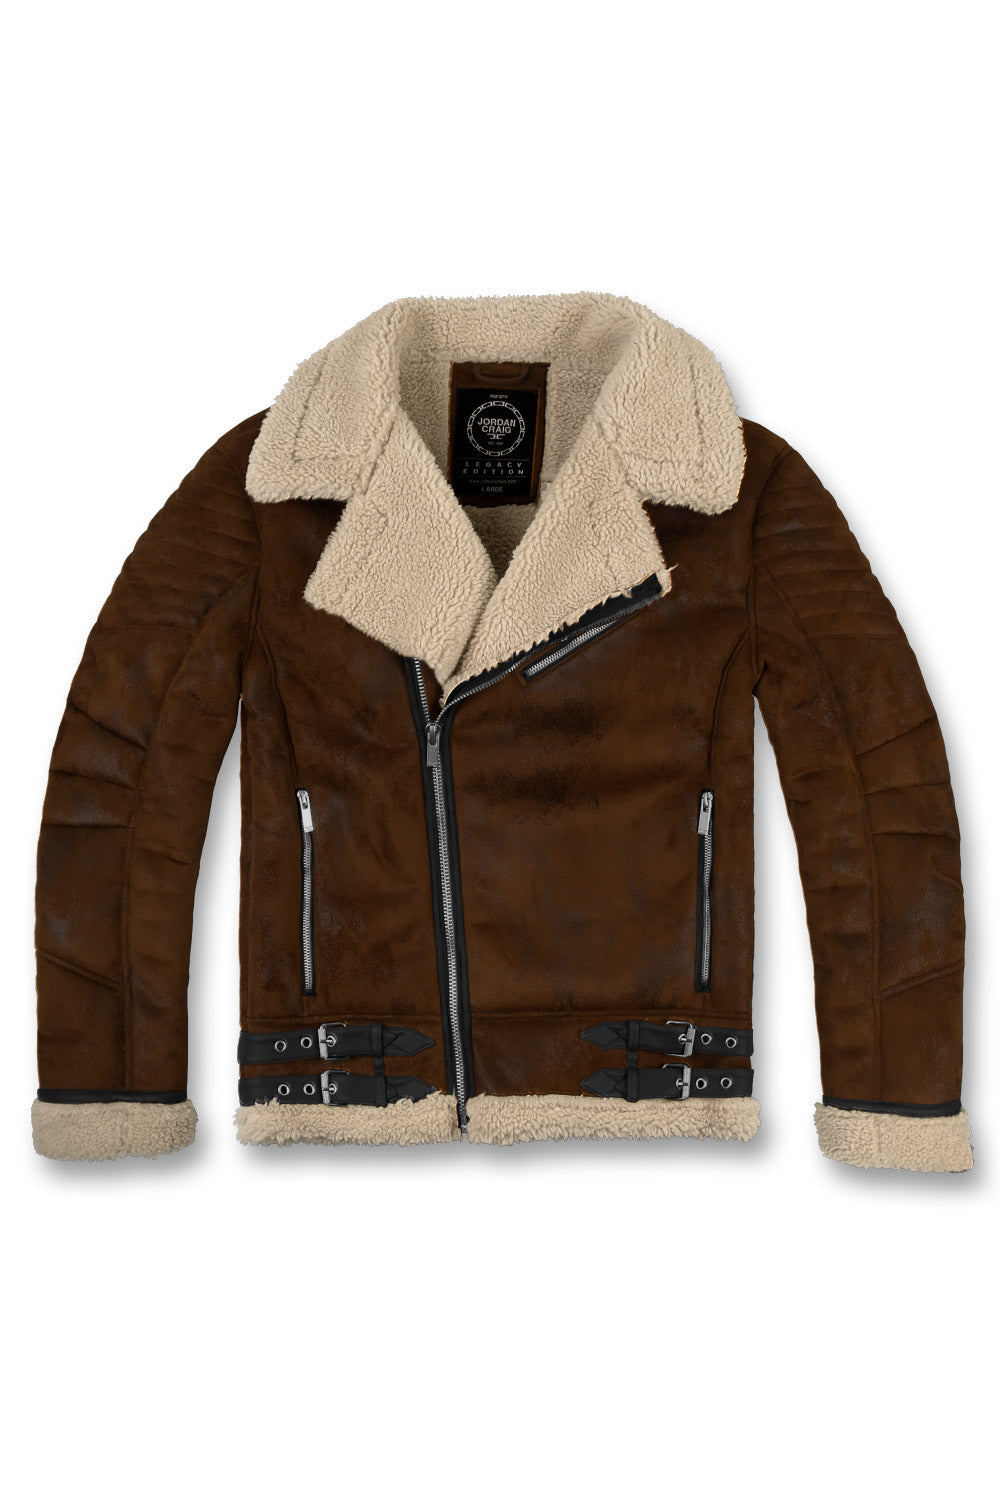 Jordan Craig - Big Men's Suede Moto Sherpa Jacket